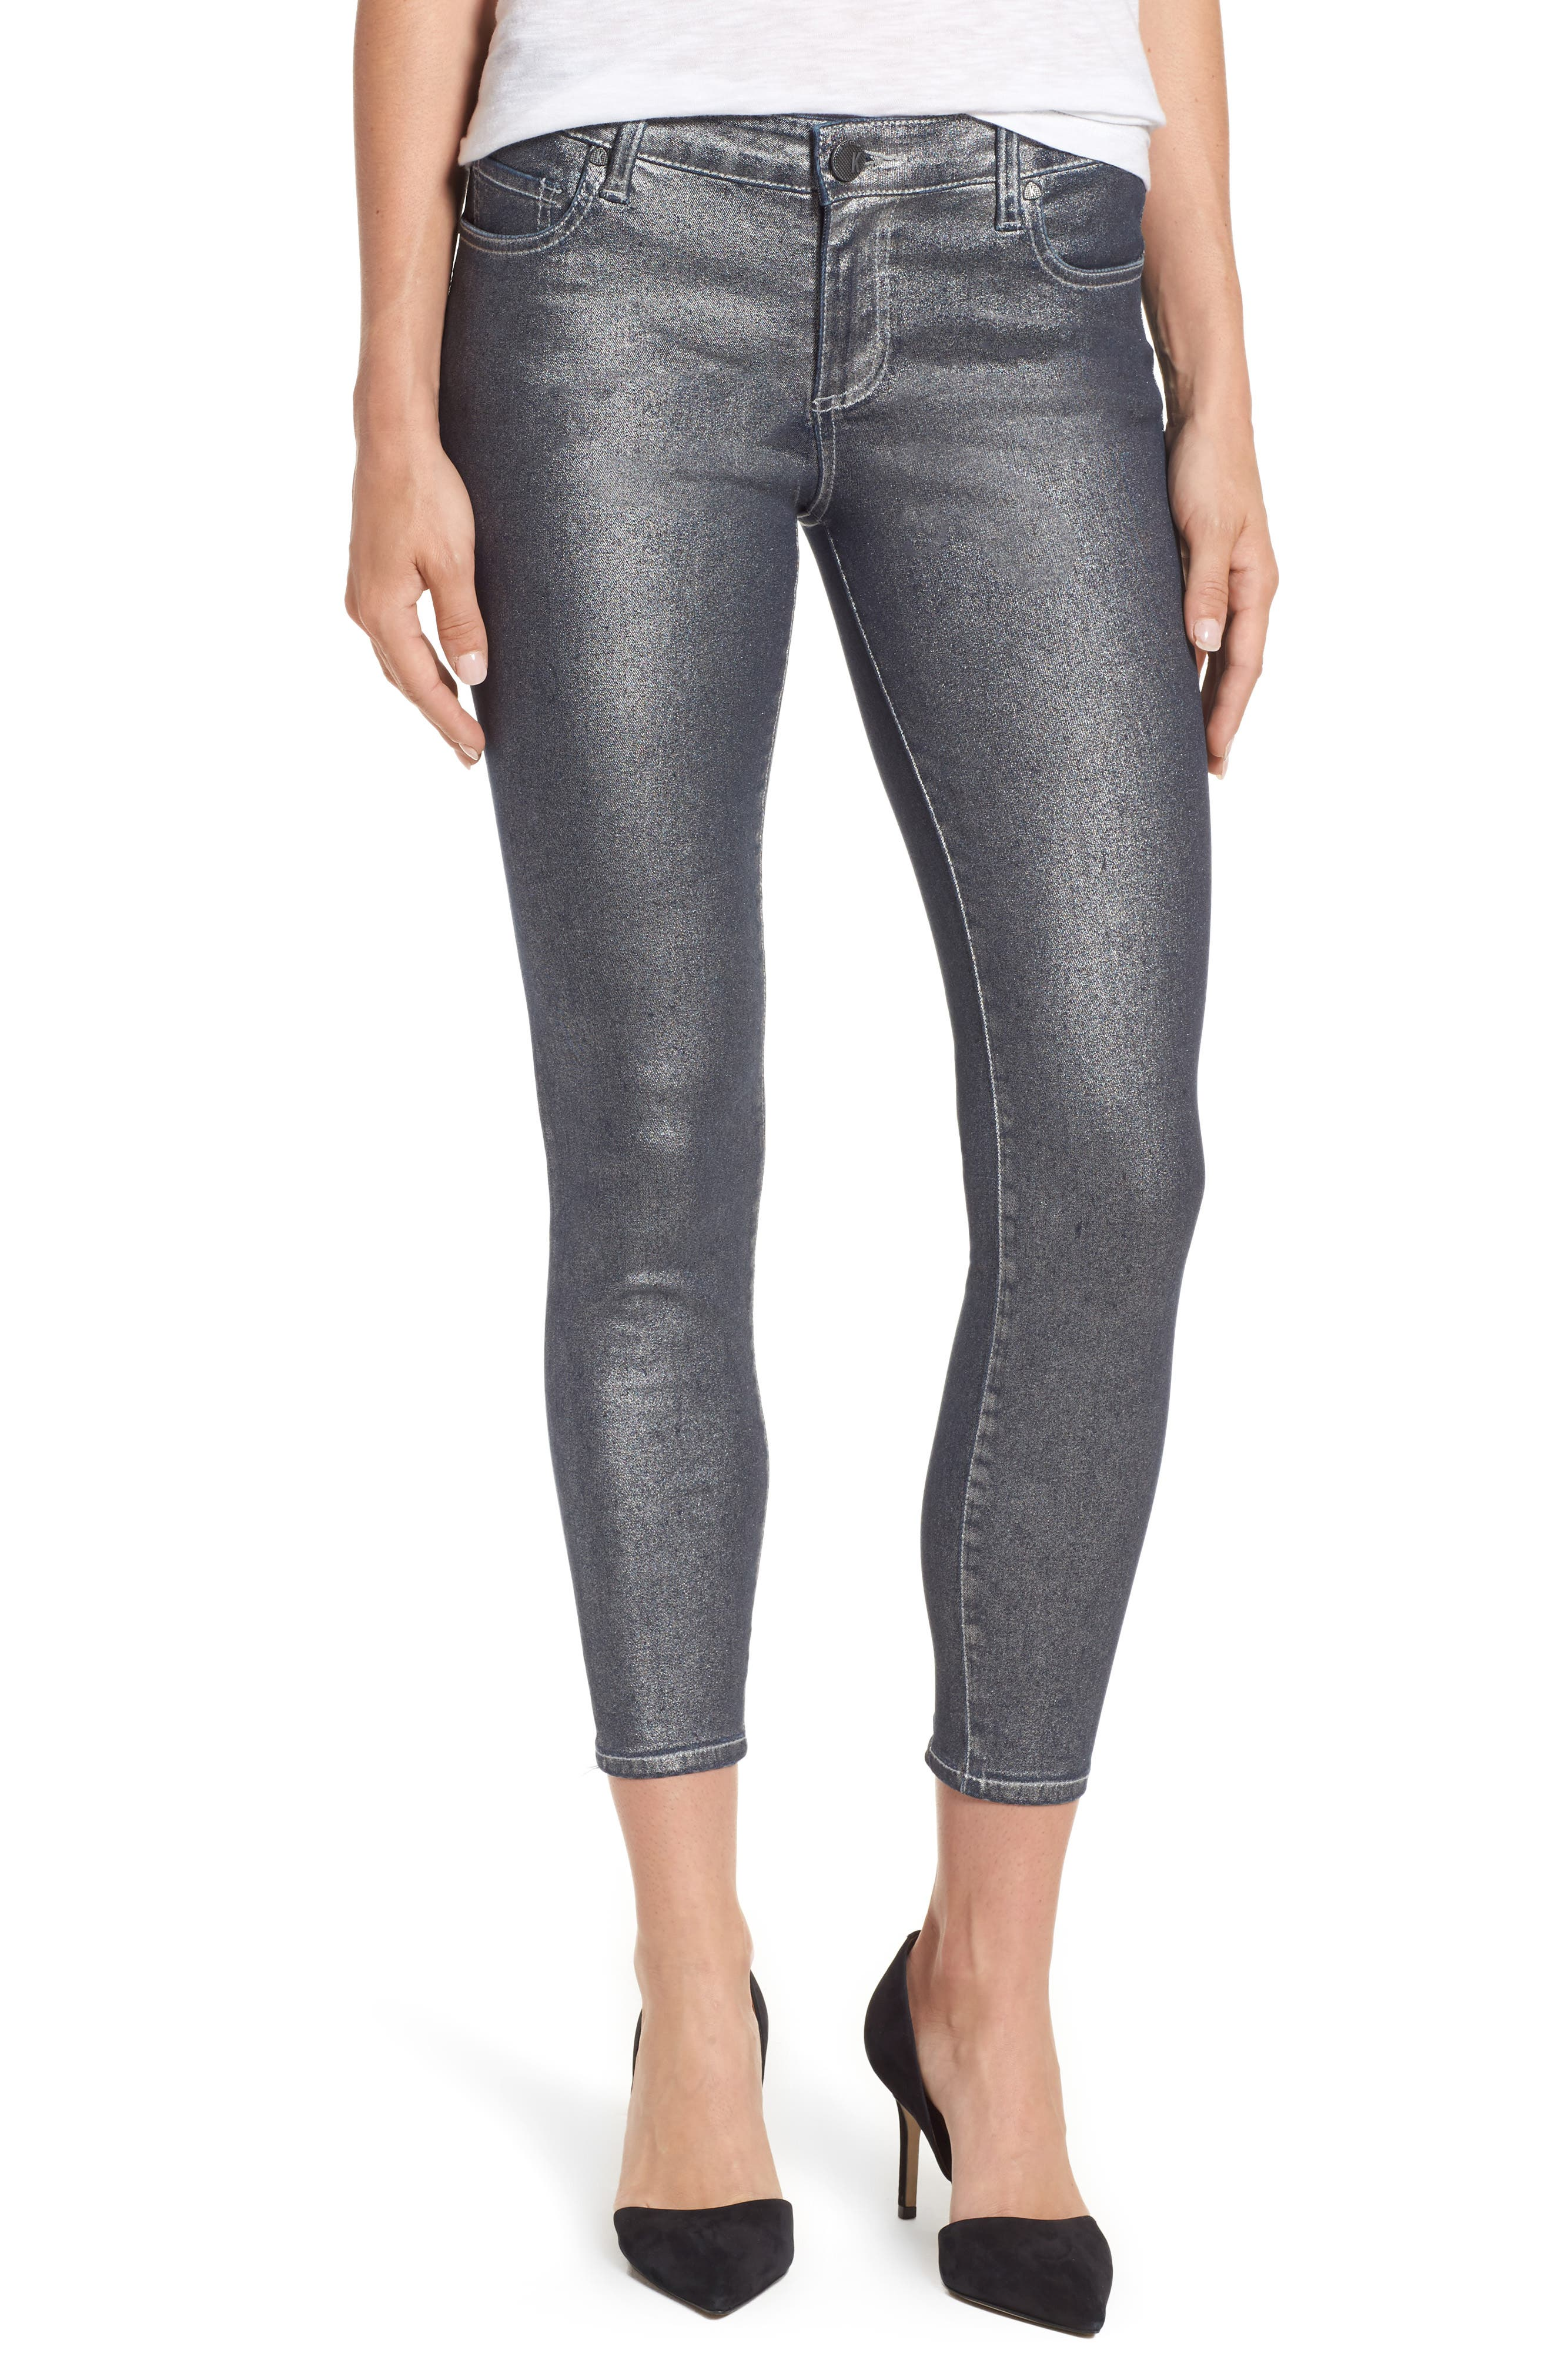 Connie Ankle Zipper Jeans,                             Main thumbnail 1, color,                             CHARCOAL GREY